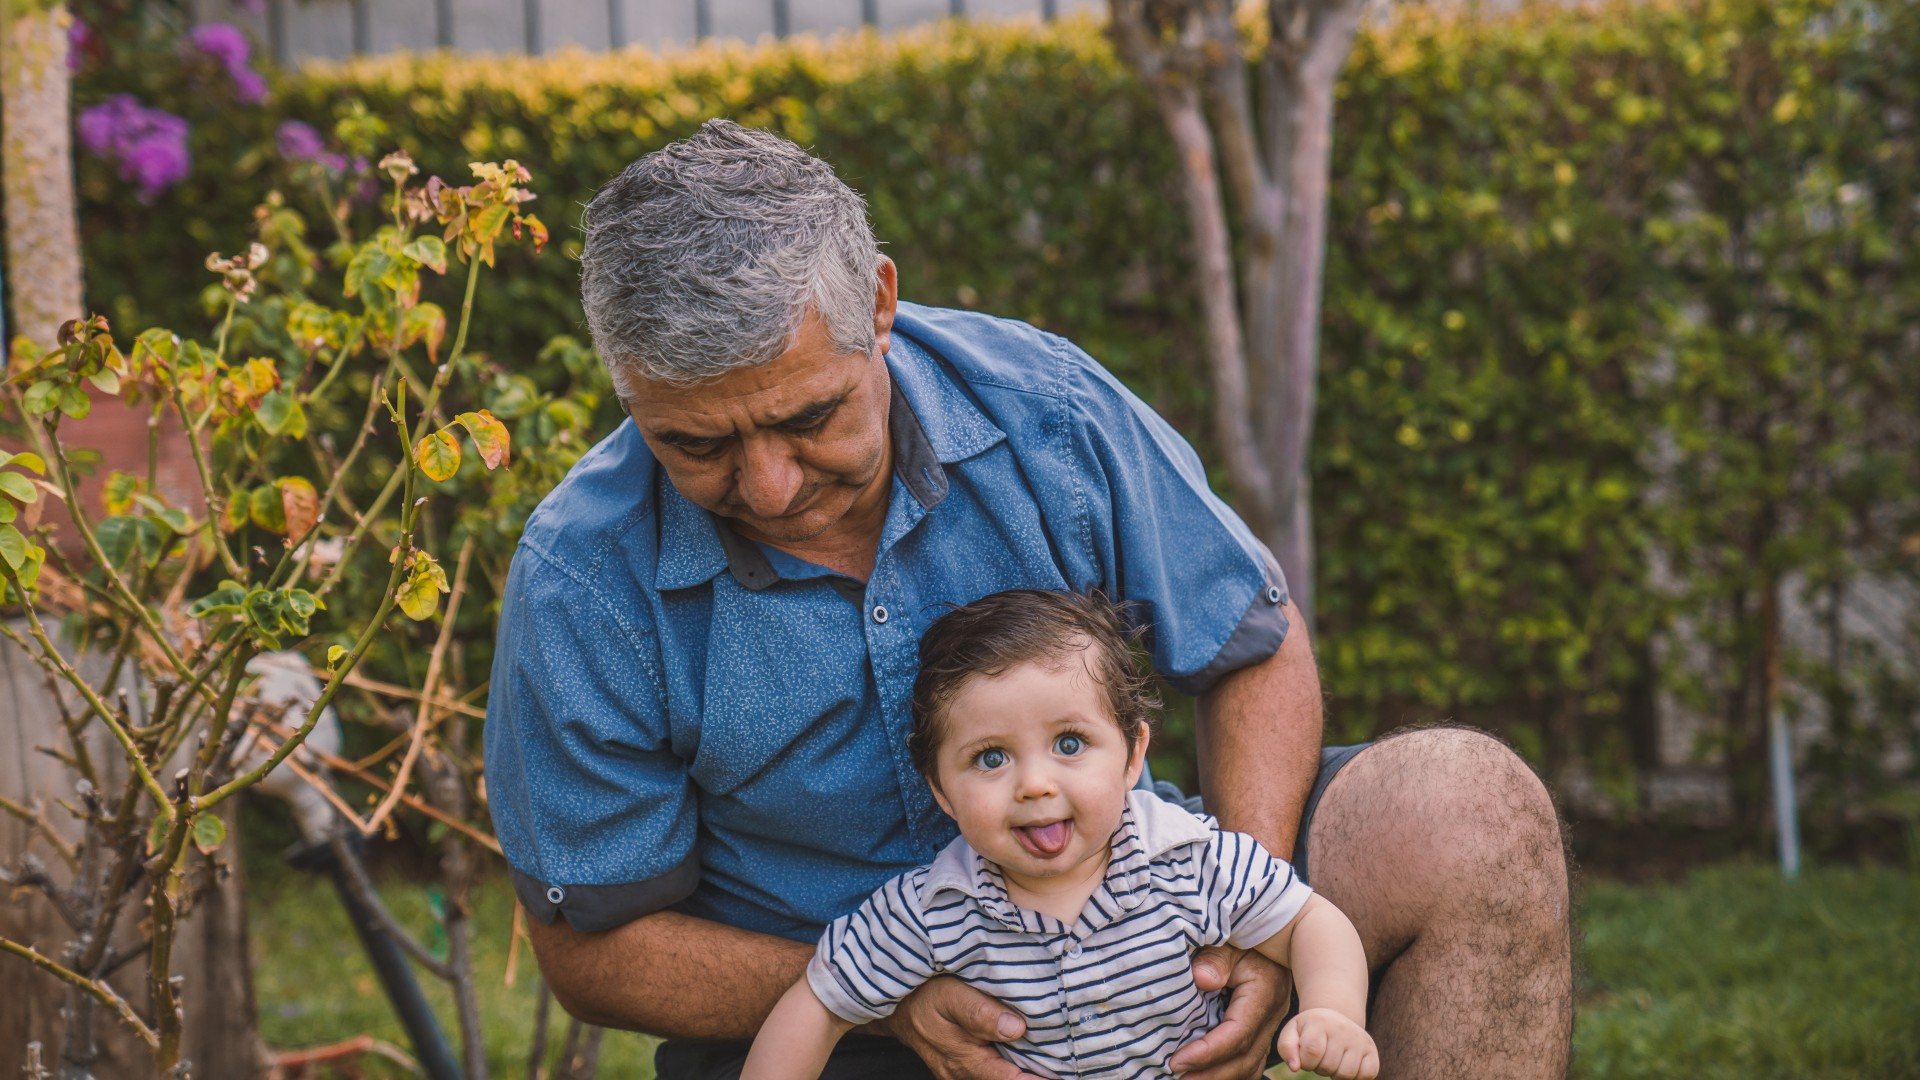 Grandfather wearing a blue shirt hold his grandchild making a silly face